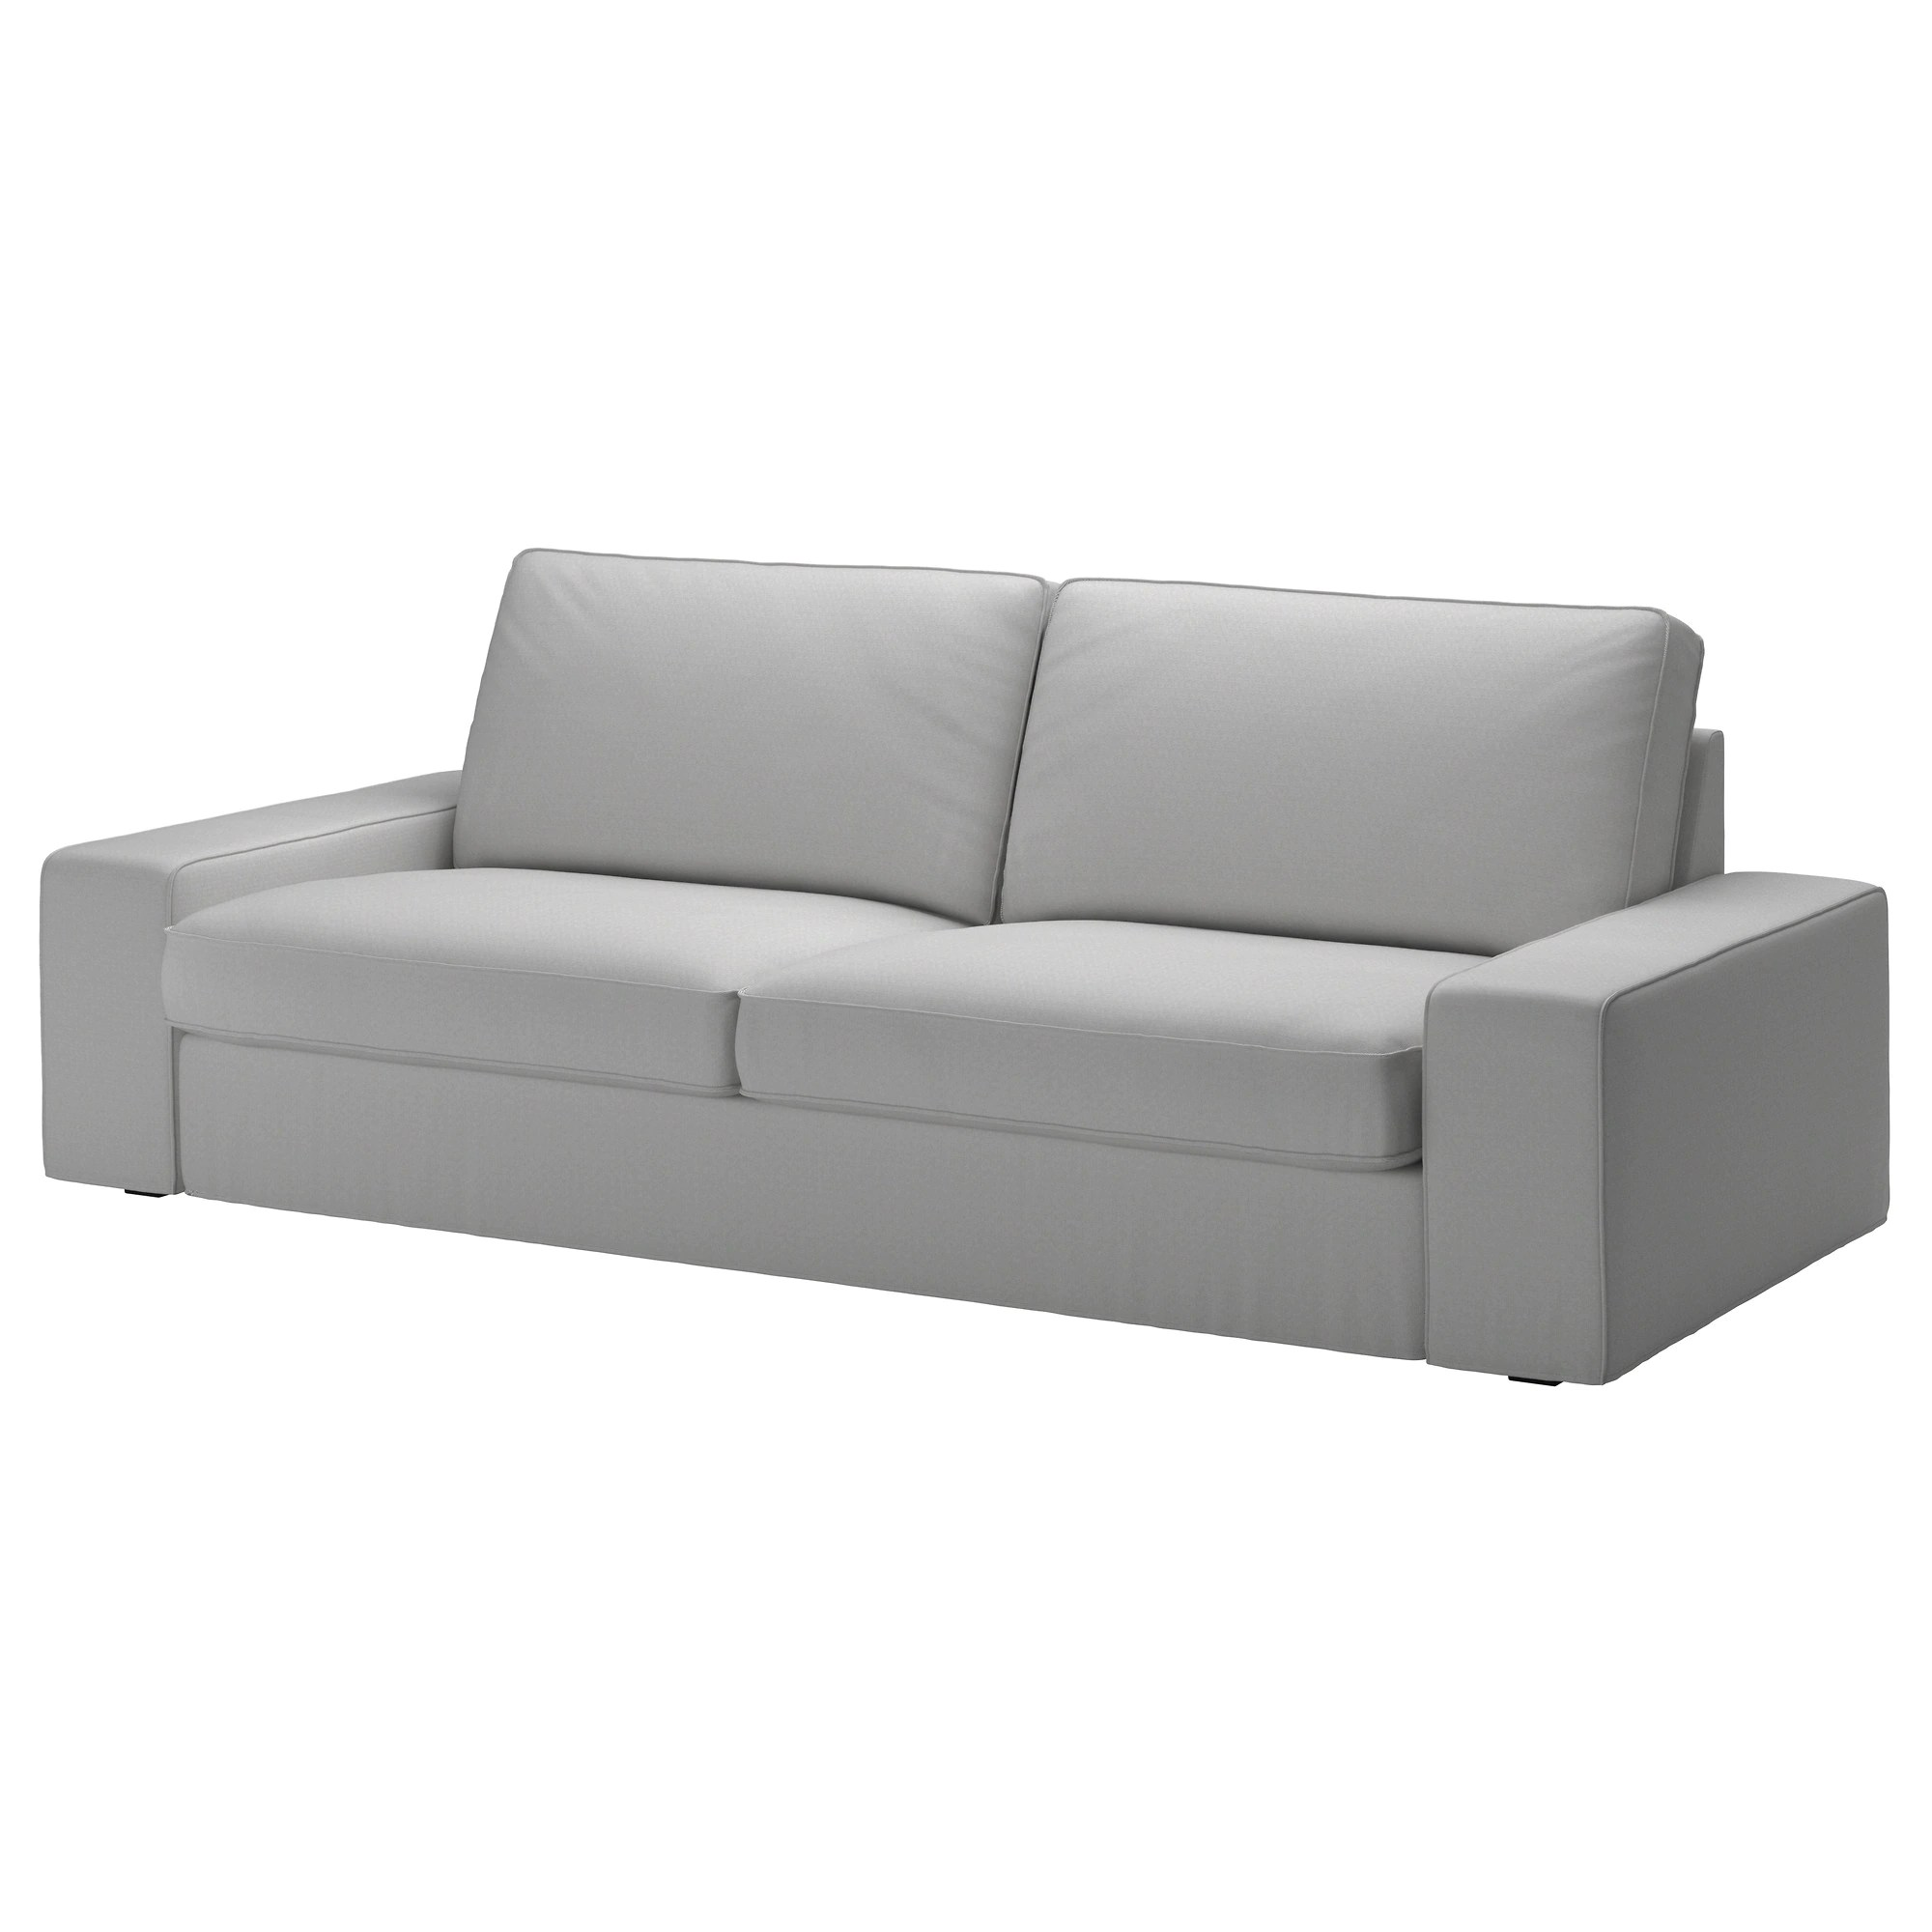 Sofa Ikea Kivik Sofa Orrsta Light Gray